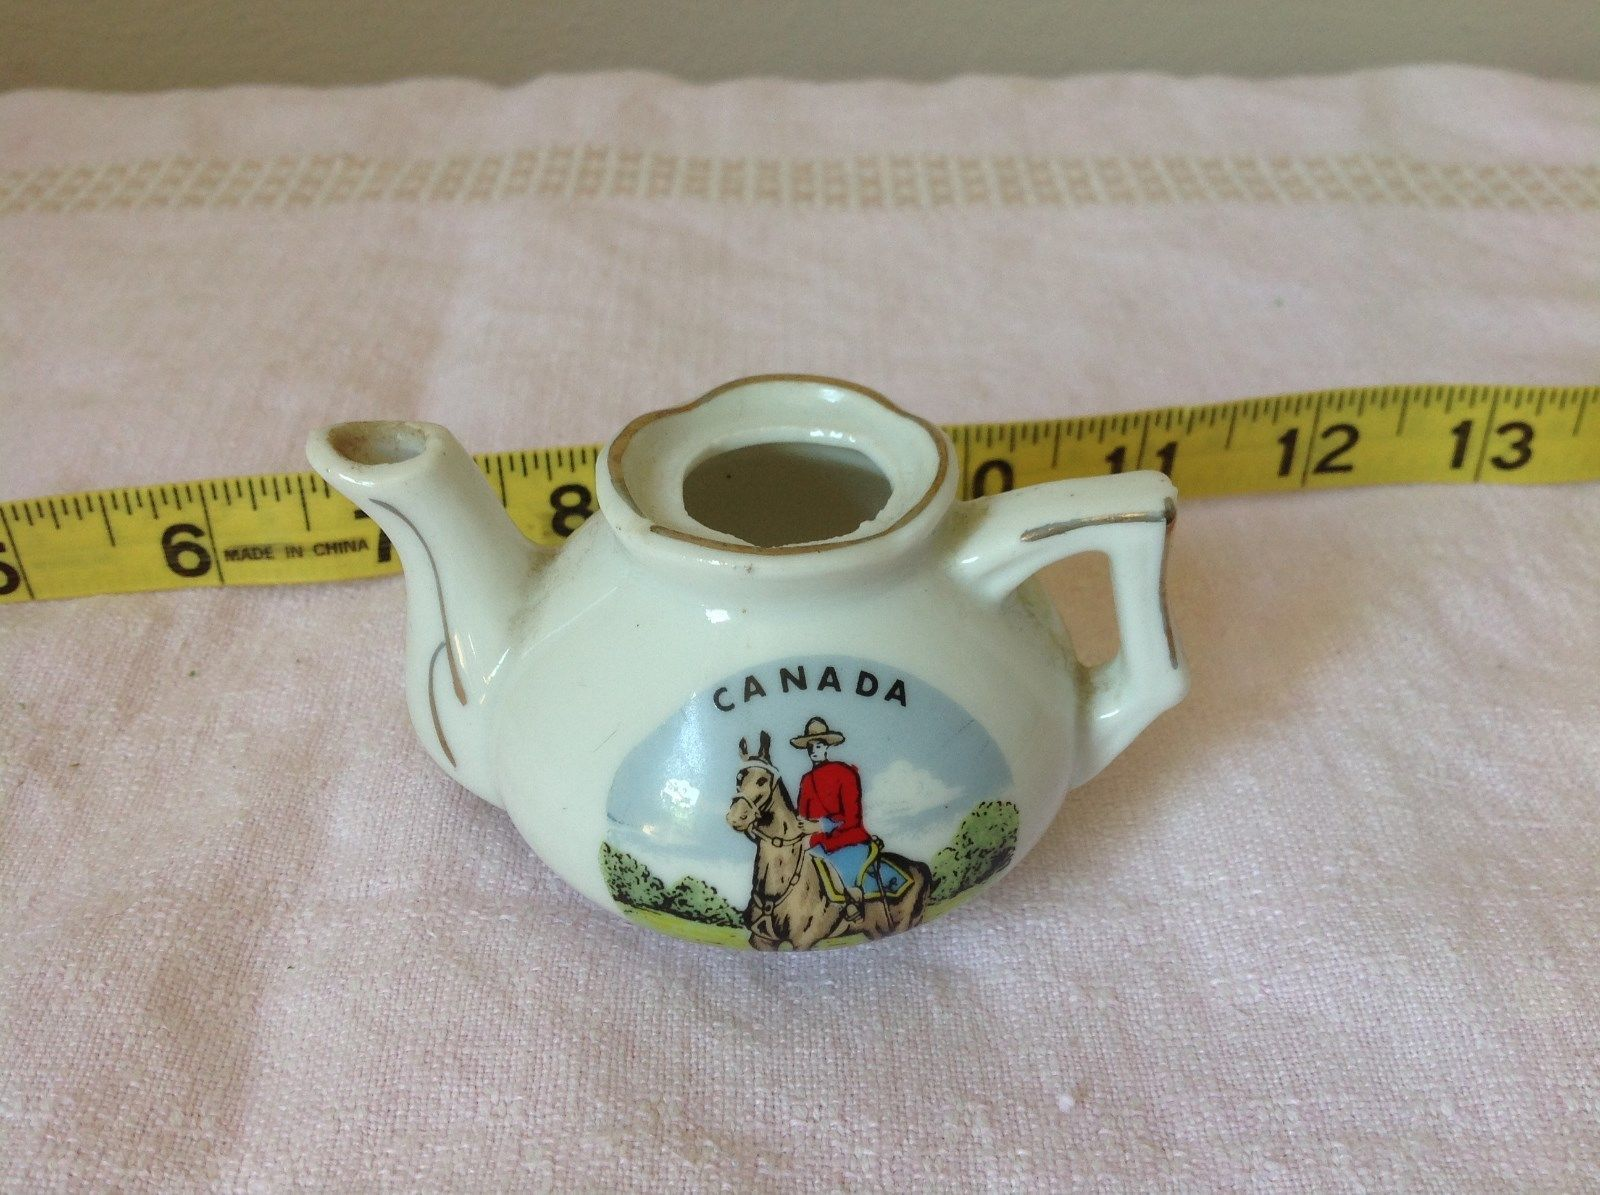 Miniature Teapot with Lid Canada RCMP Decorative Item White